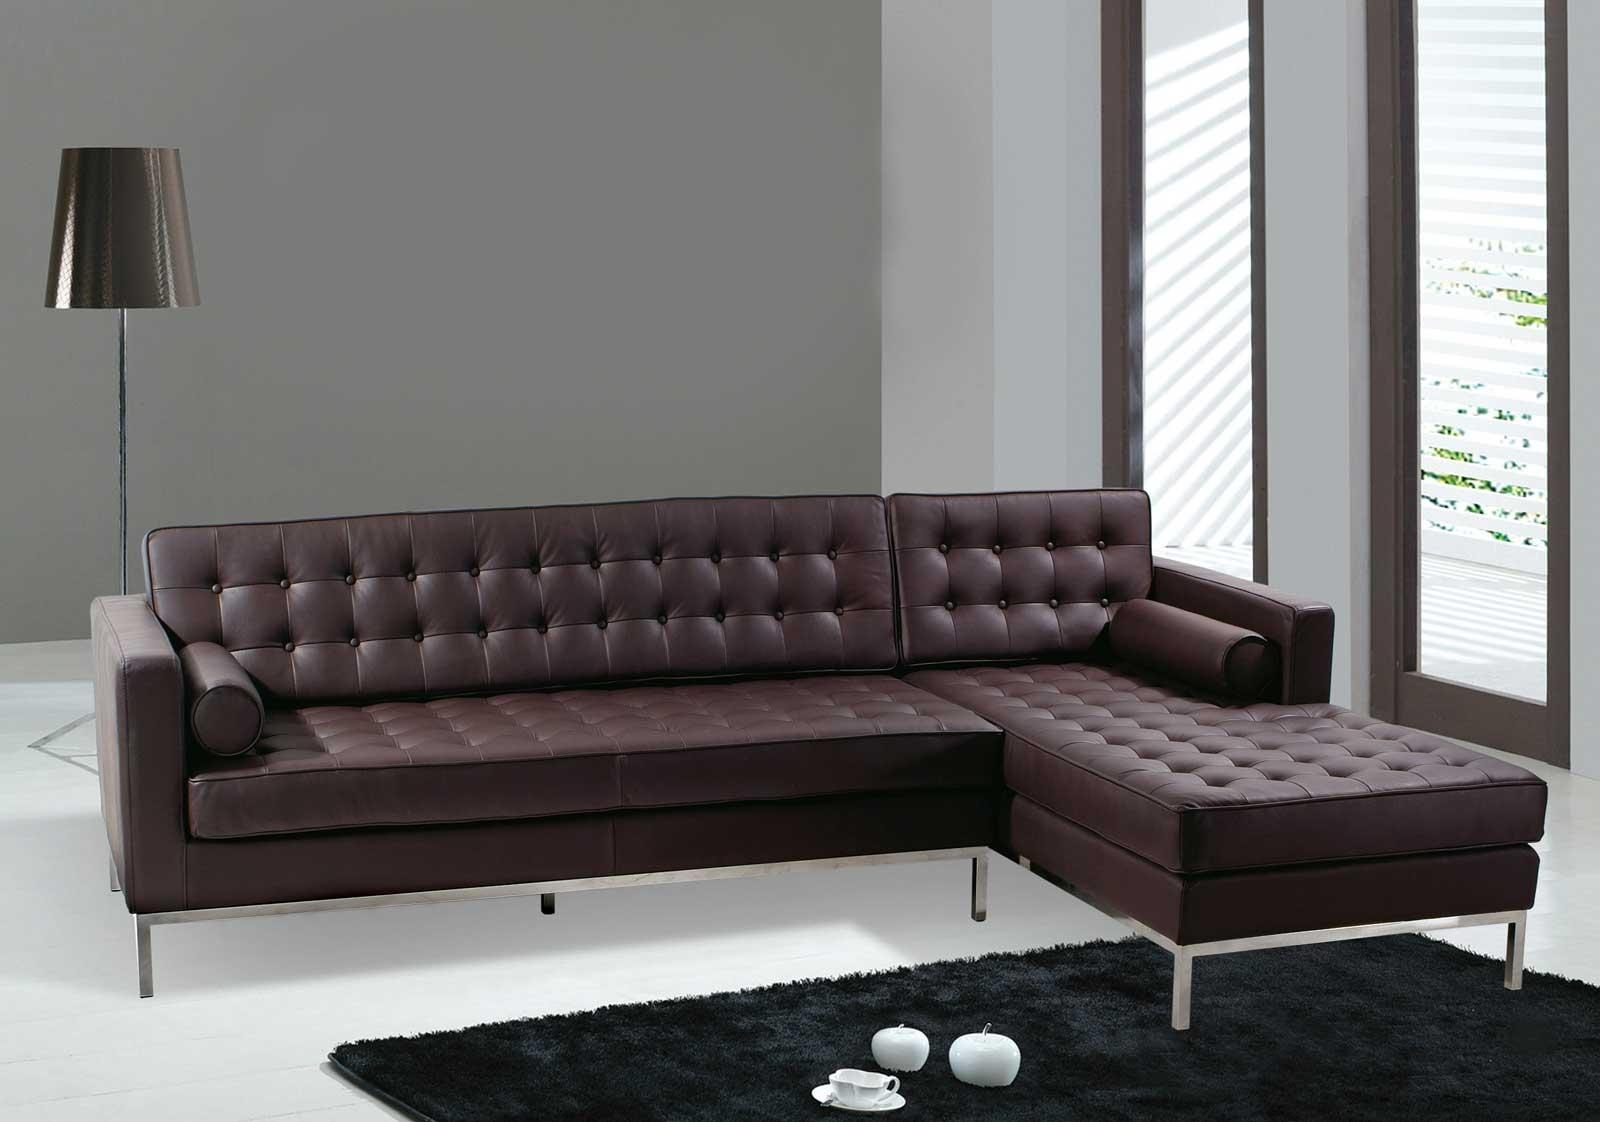 Contemporary Leather Sofas Italian : Modern Contemporary Leather Pertaining To Leather Sofas (Image 6 of 21)